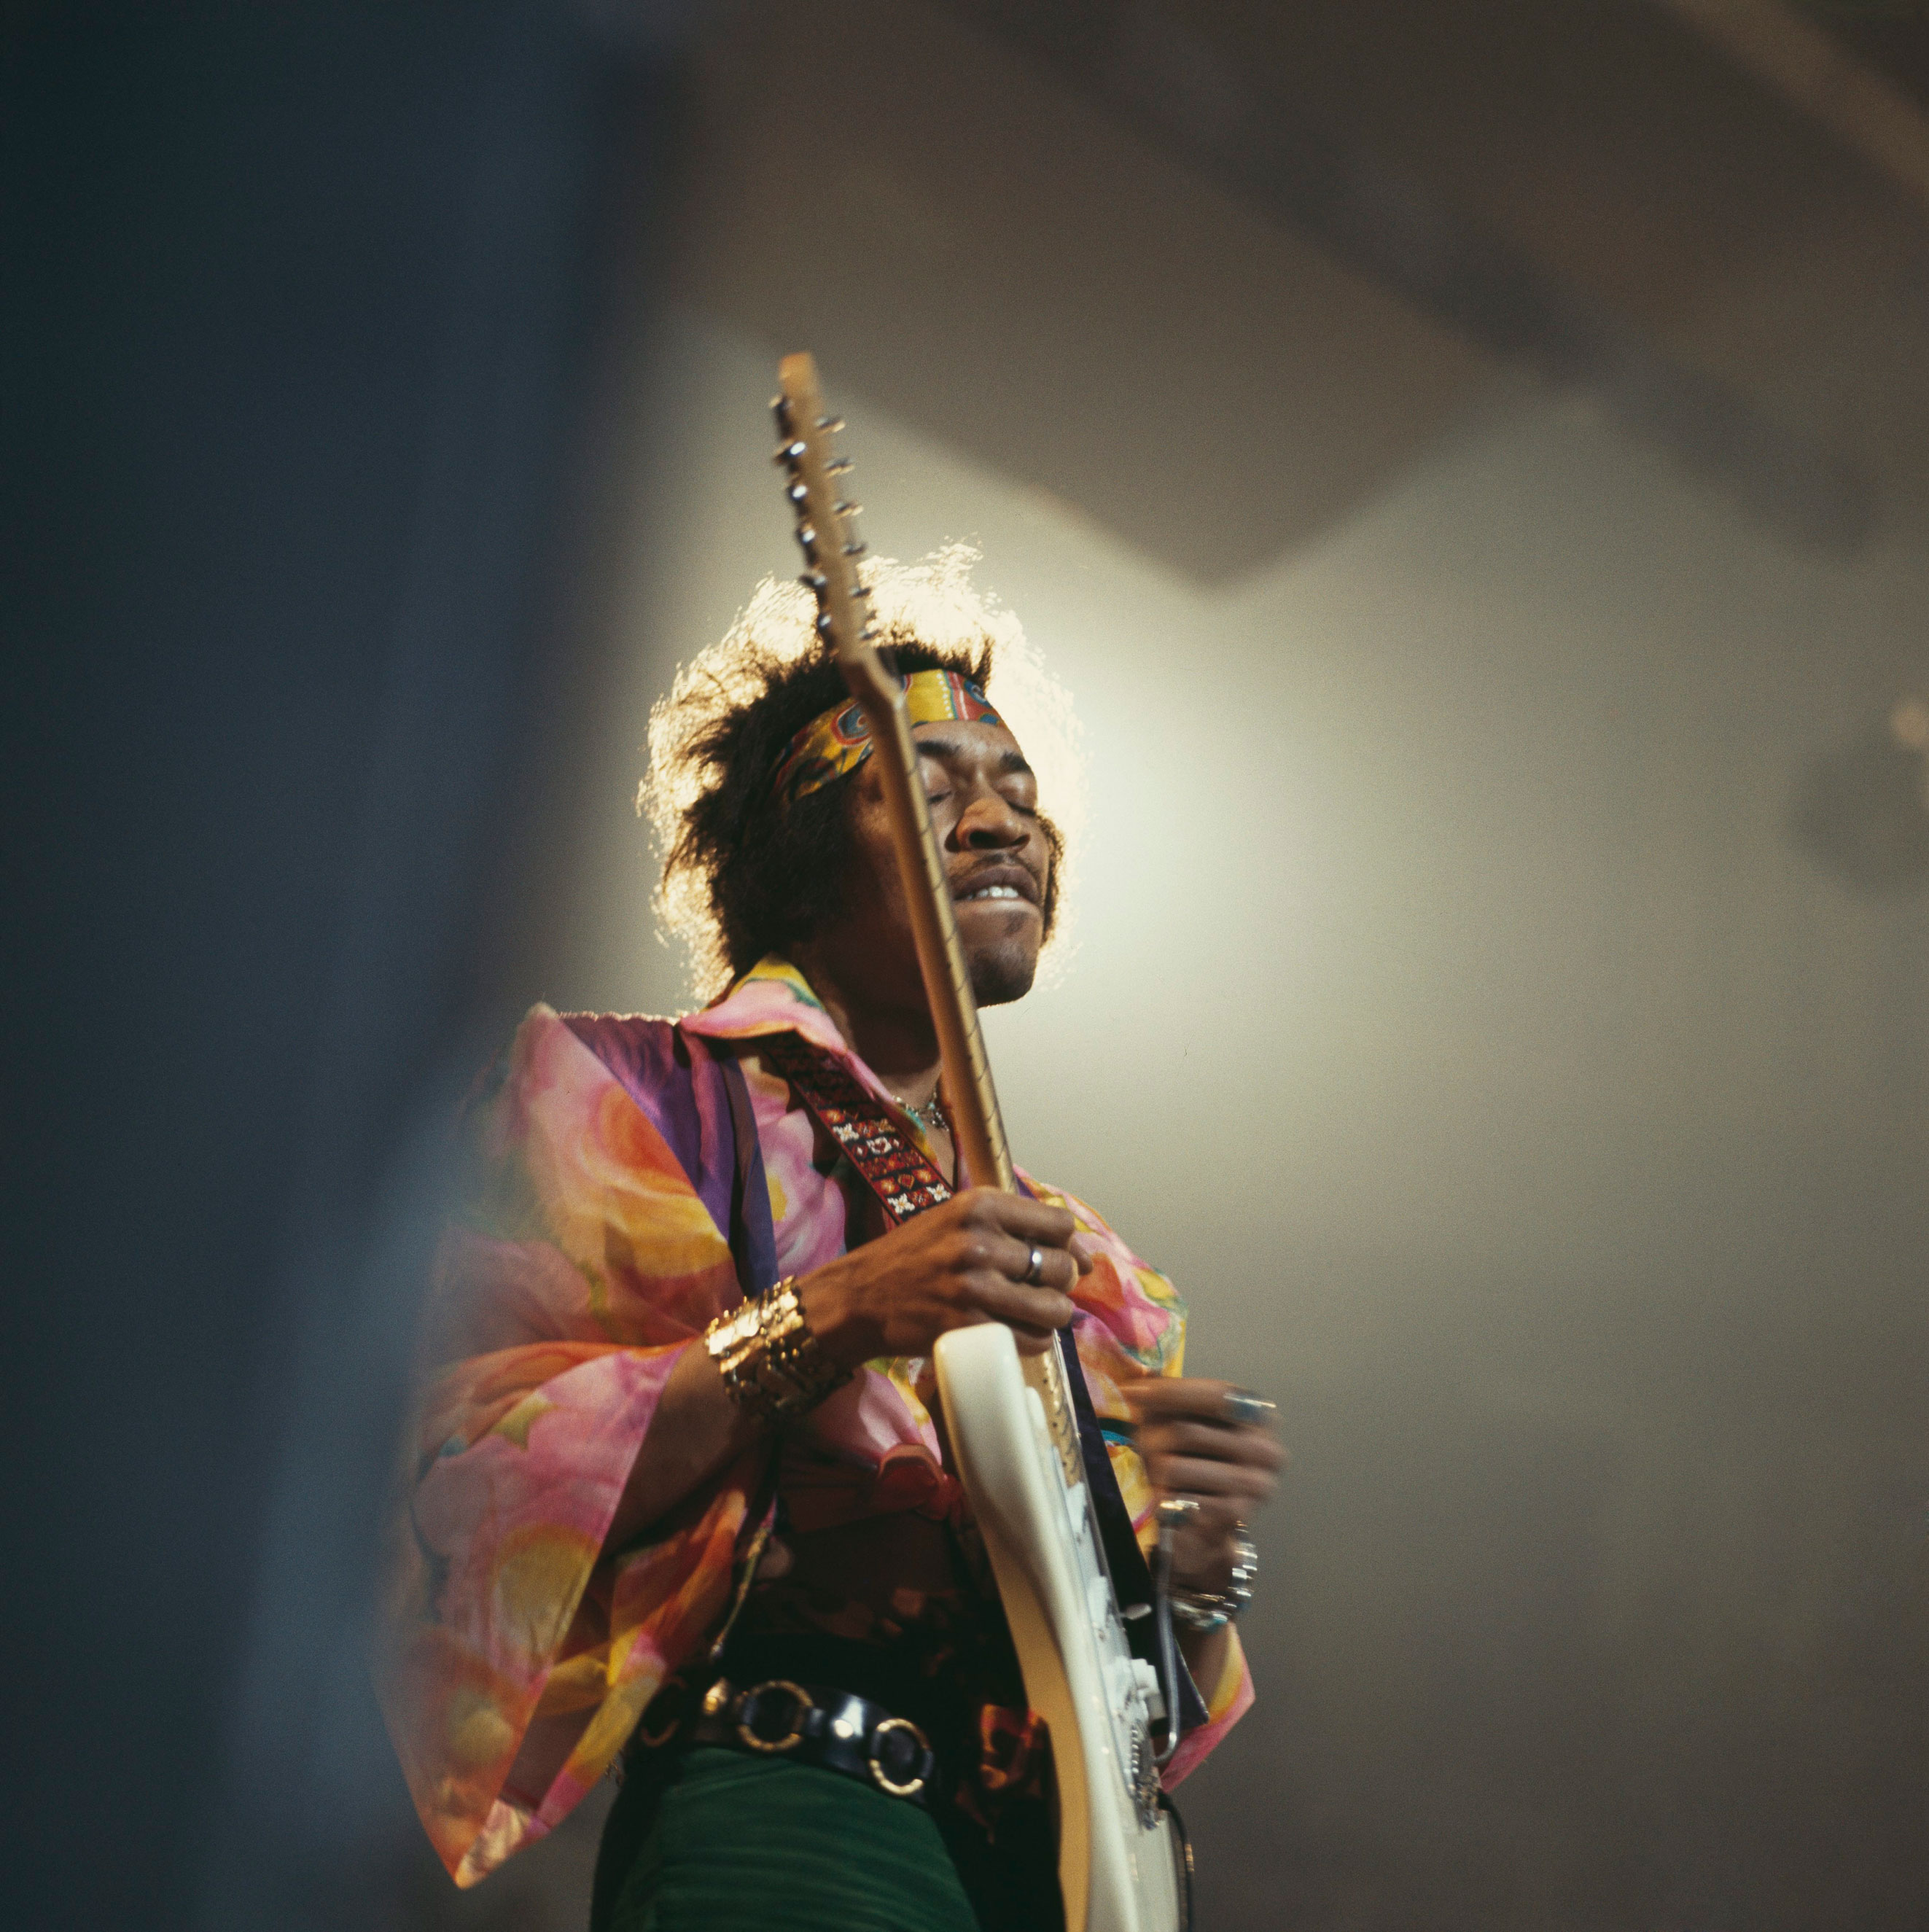 Jimi Hendrix performs on stage at the Royal Albert Hall on Feb. 24th, 1969 in London.